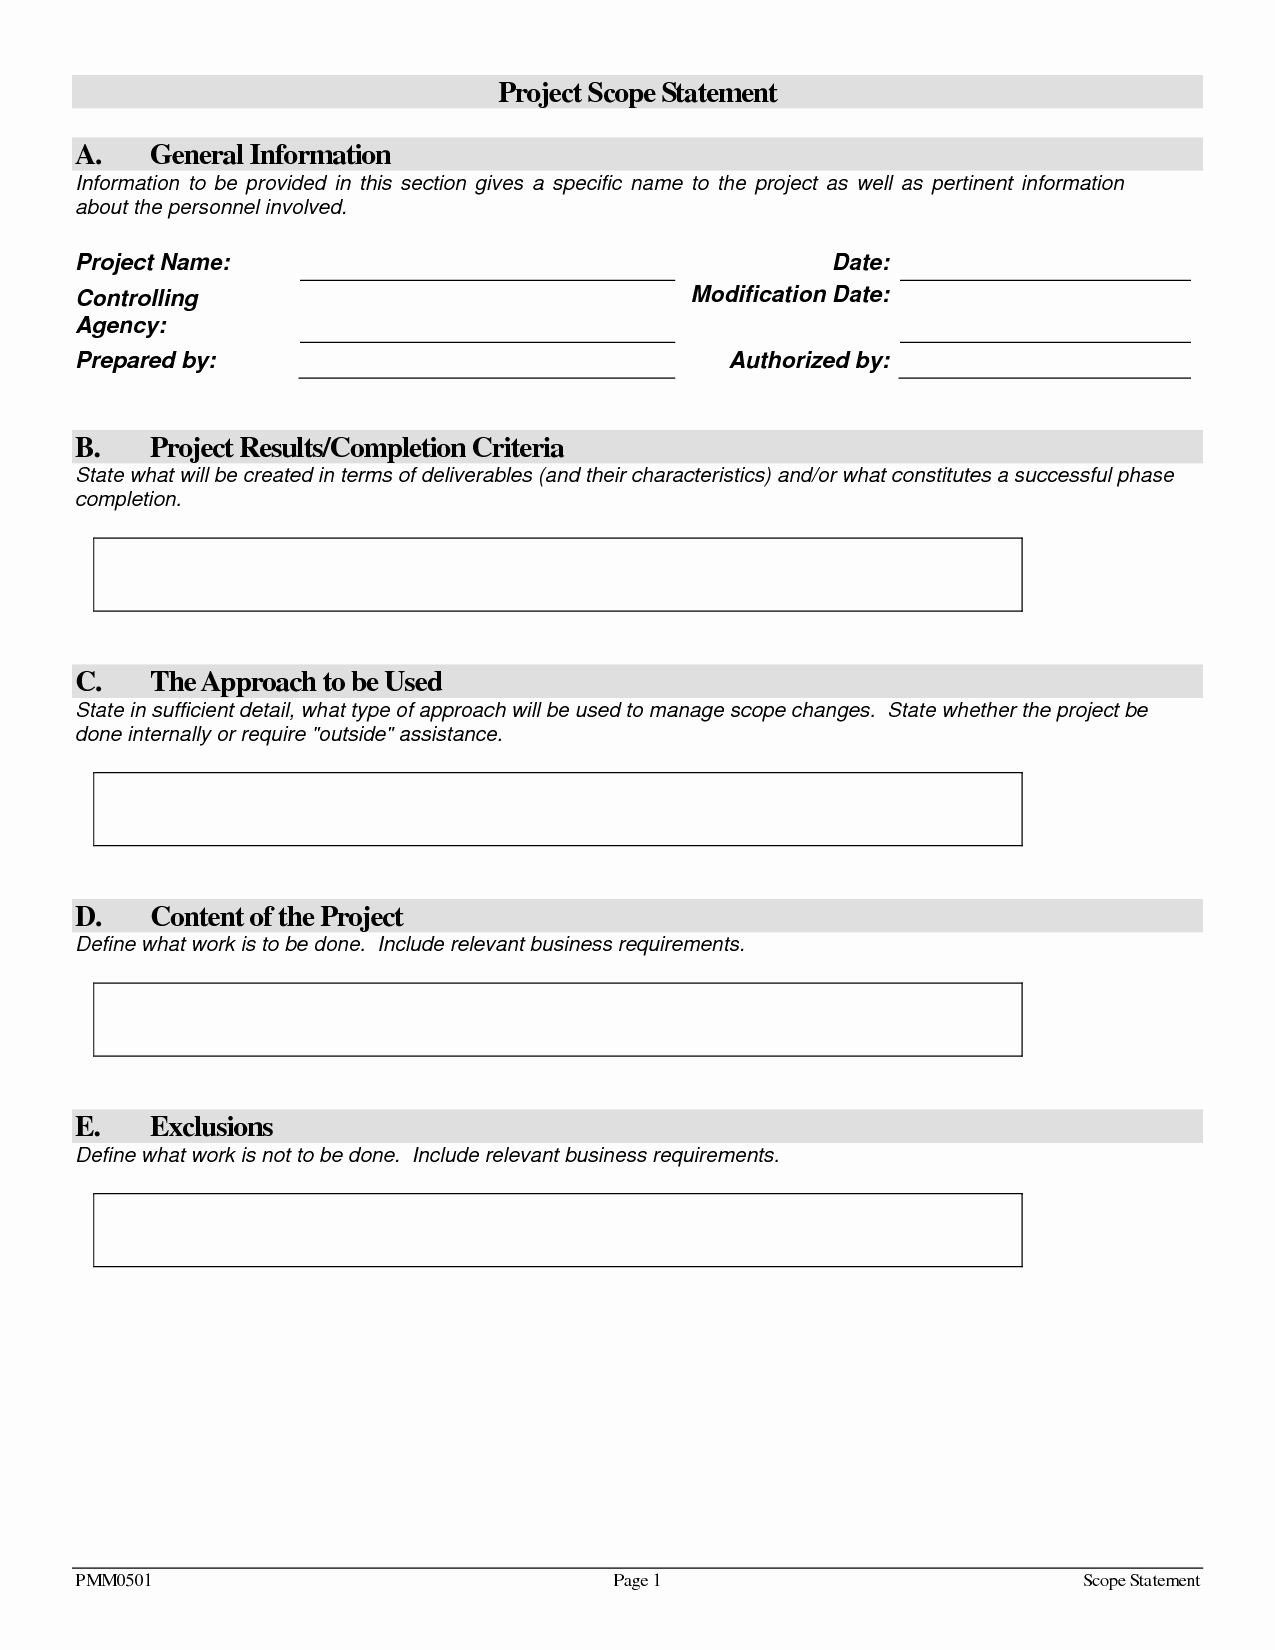 Project Scope Statement Template Inspirational Project Scope Template